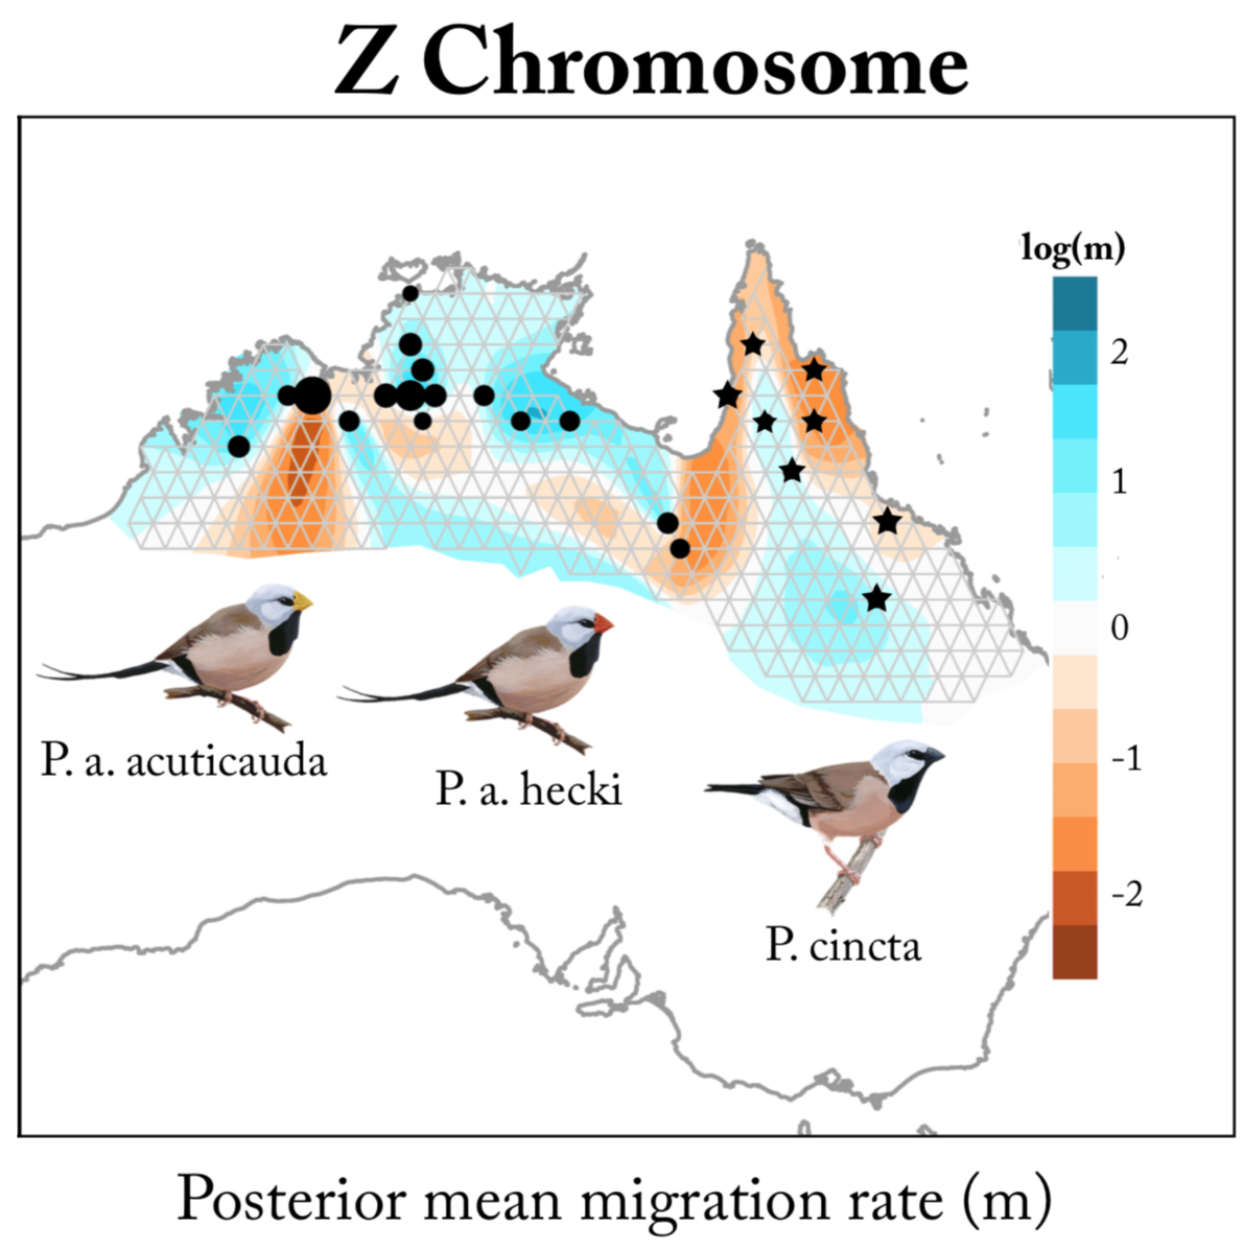 Effective migration surfaces for the sex chromosomes across the range of the long-tailed finch (circles) and black-throated finch ( Poephila cincta;  stars). Color gradient depicts geographic areas that are barriers to effective genetic migration (orange) compared to areas of average (white) or elevated migration (blue). This approach highlights the strength of the Z chromosome as a barrier to migration between long-tailed finch subspecies. See Hooper et al. (2018).